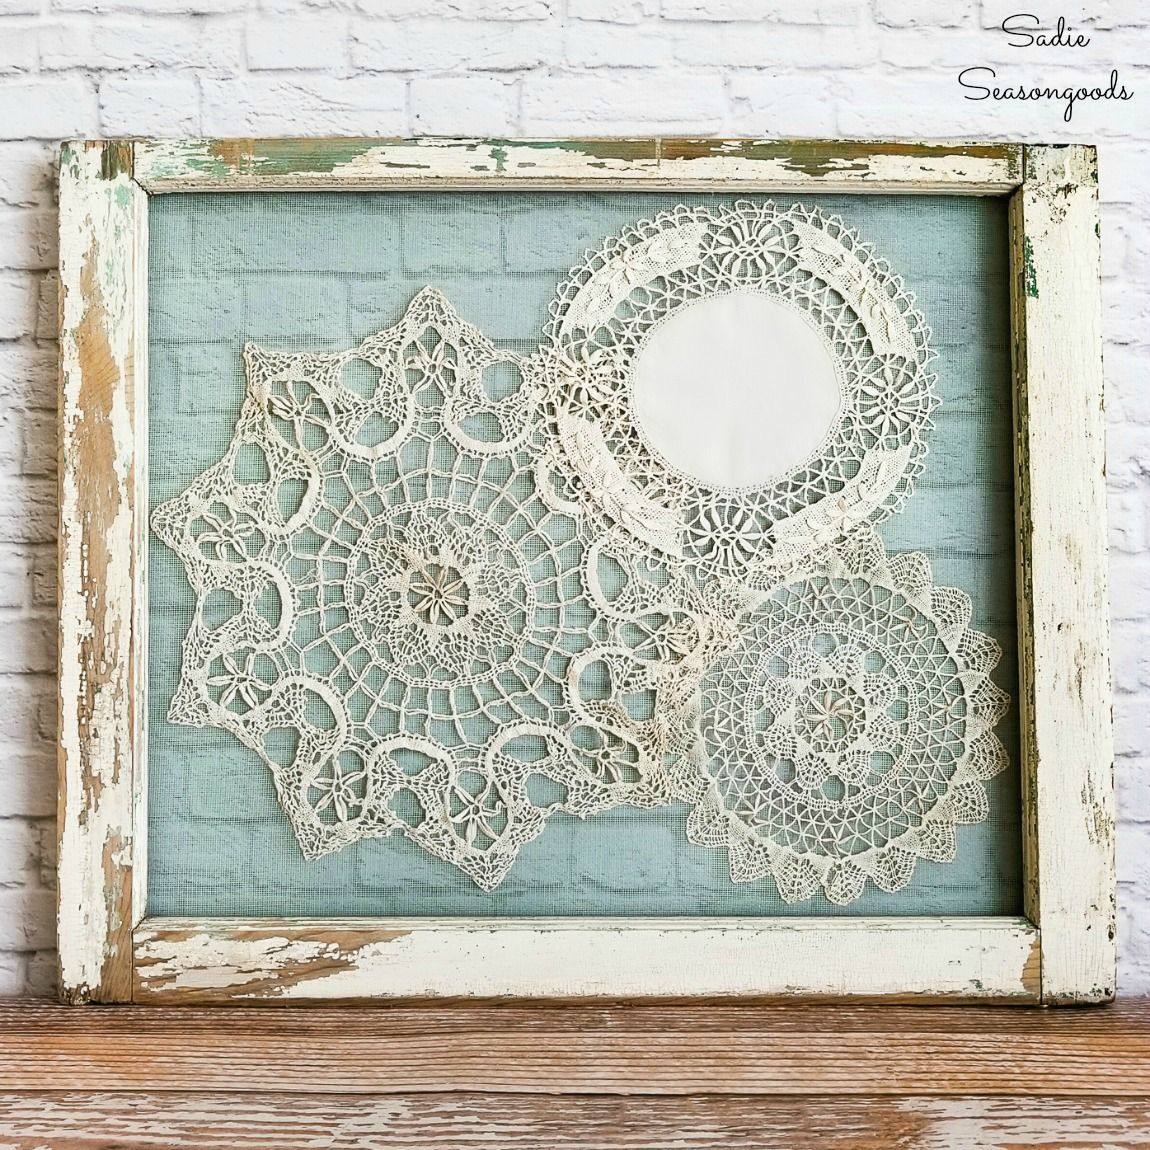 Shabby Chic Wall Decor with Lace Doilies and an Old Window ...